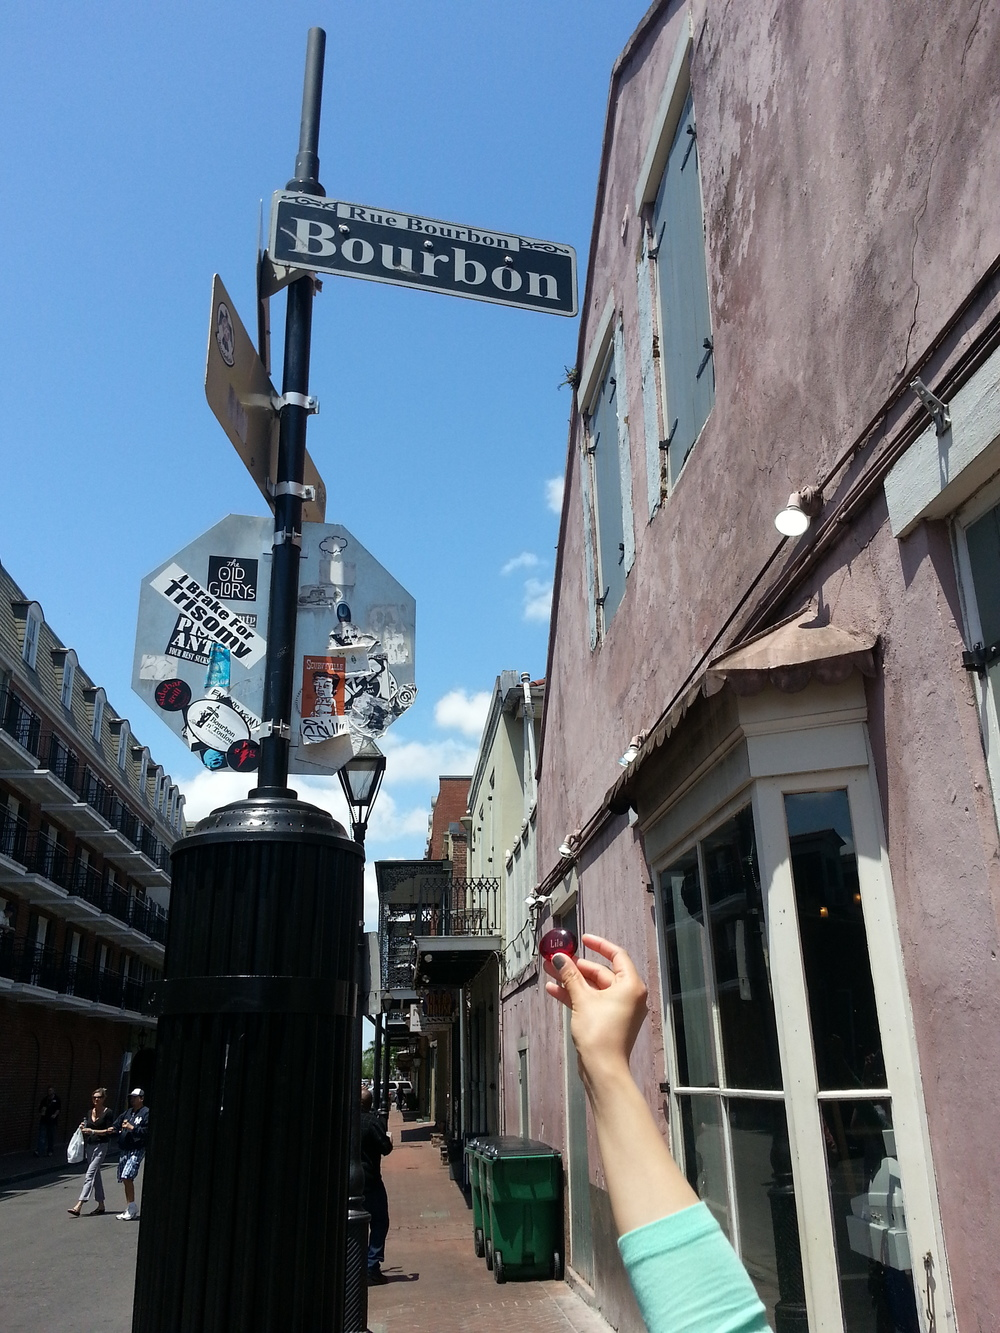 Lila made it to Bourbon Street